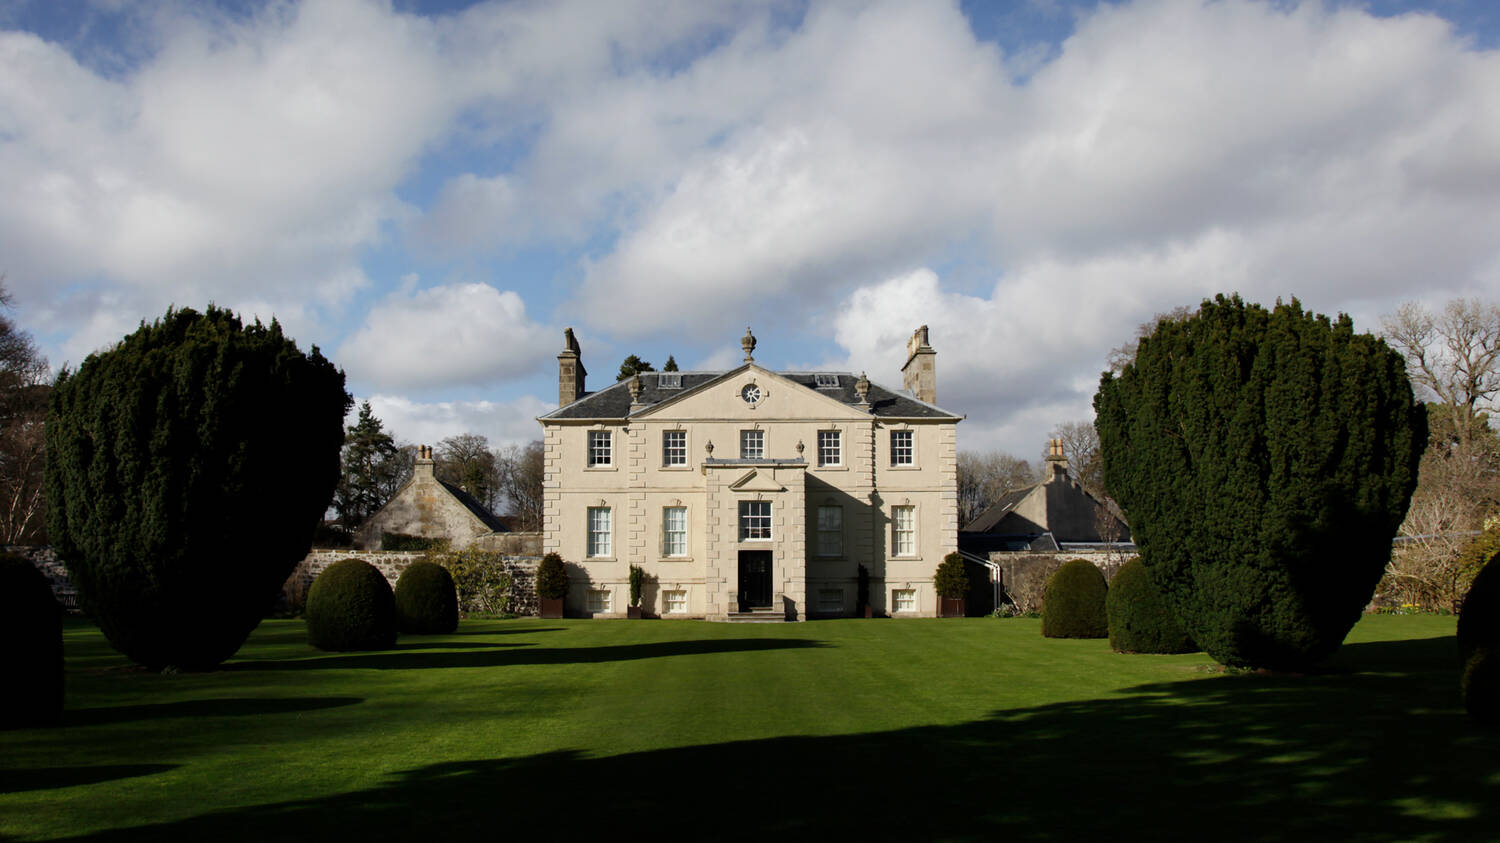 A symmetrical, Georgian-style large country house stands at the top of an immaculate lawn, with large yew trees to either side. It is a sunny day with fluffy white clouds across a blue sky.